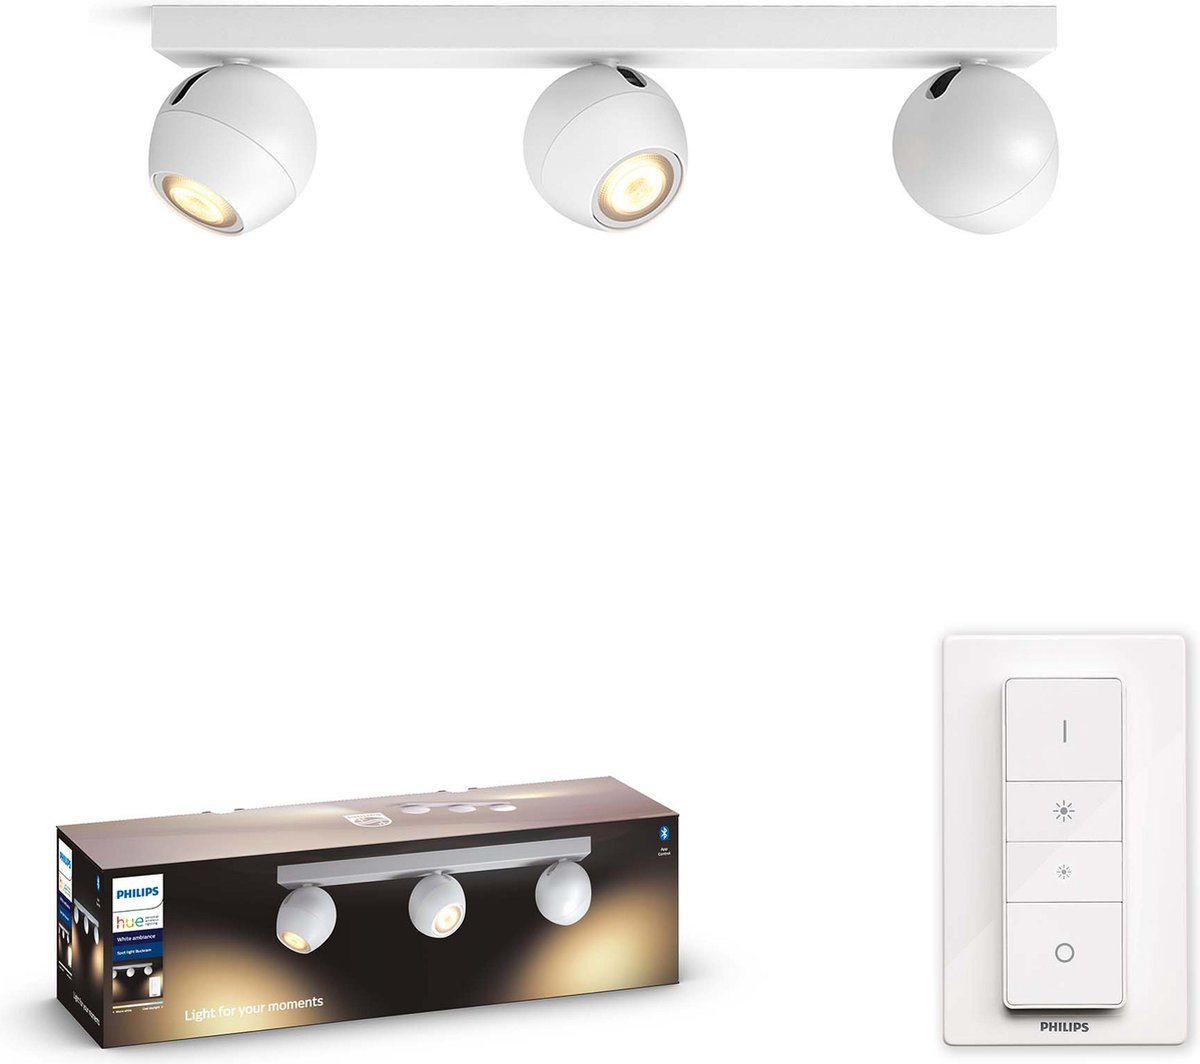 Philips Hue - Buckram 3-Spot Light- White Ambiance - Bluetooth Dimmer Included